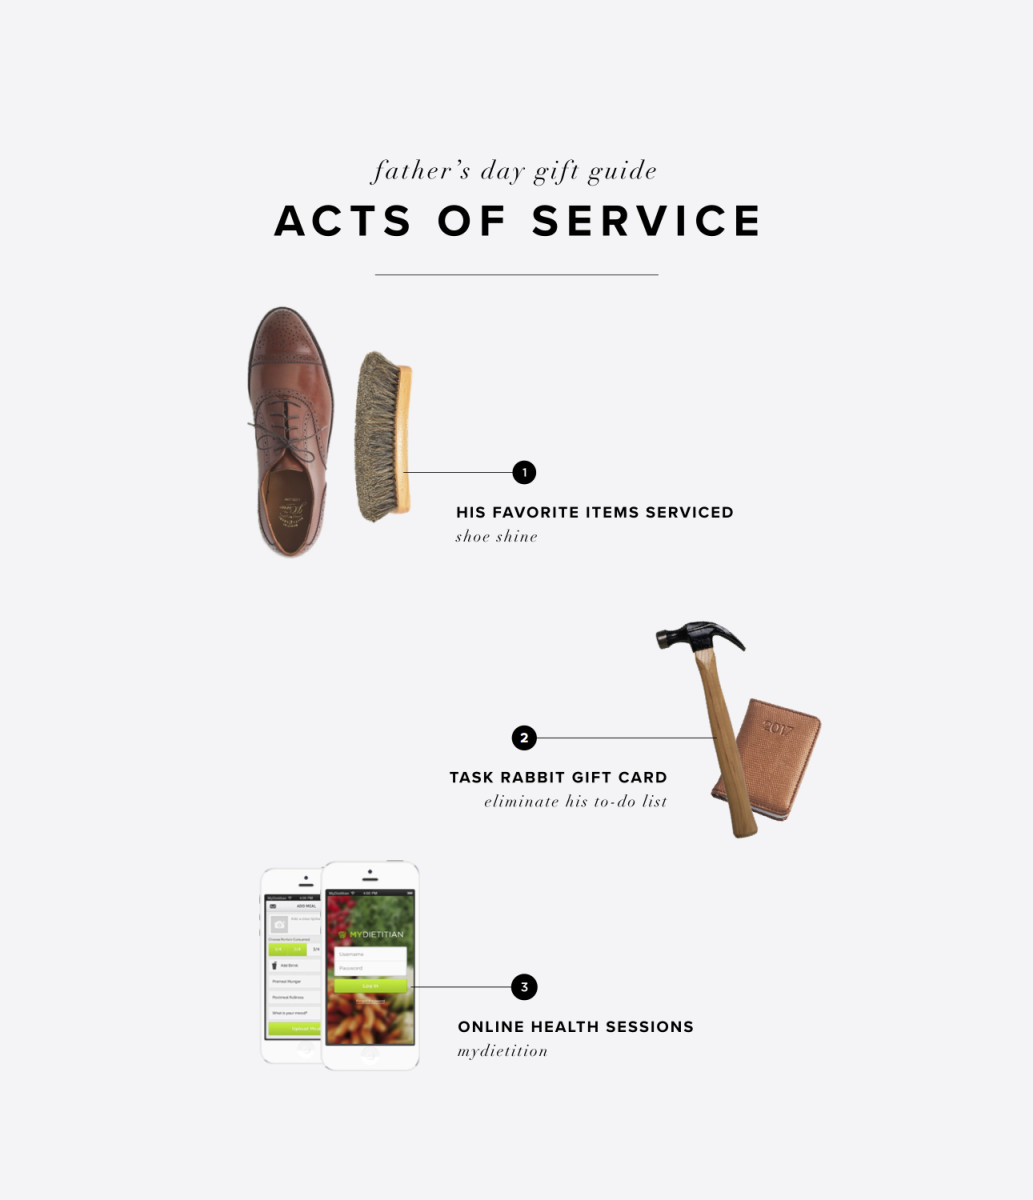 5LL-giftguide-actsofservice_Part1